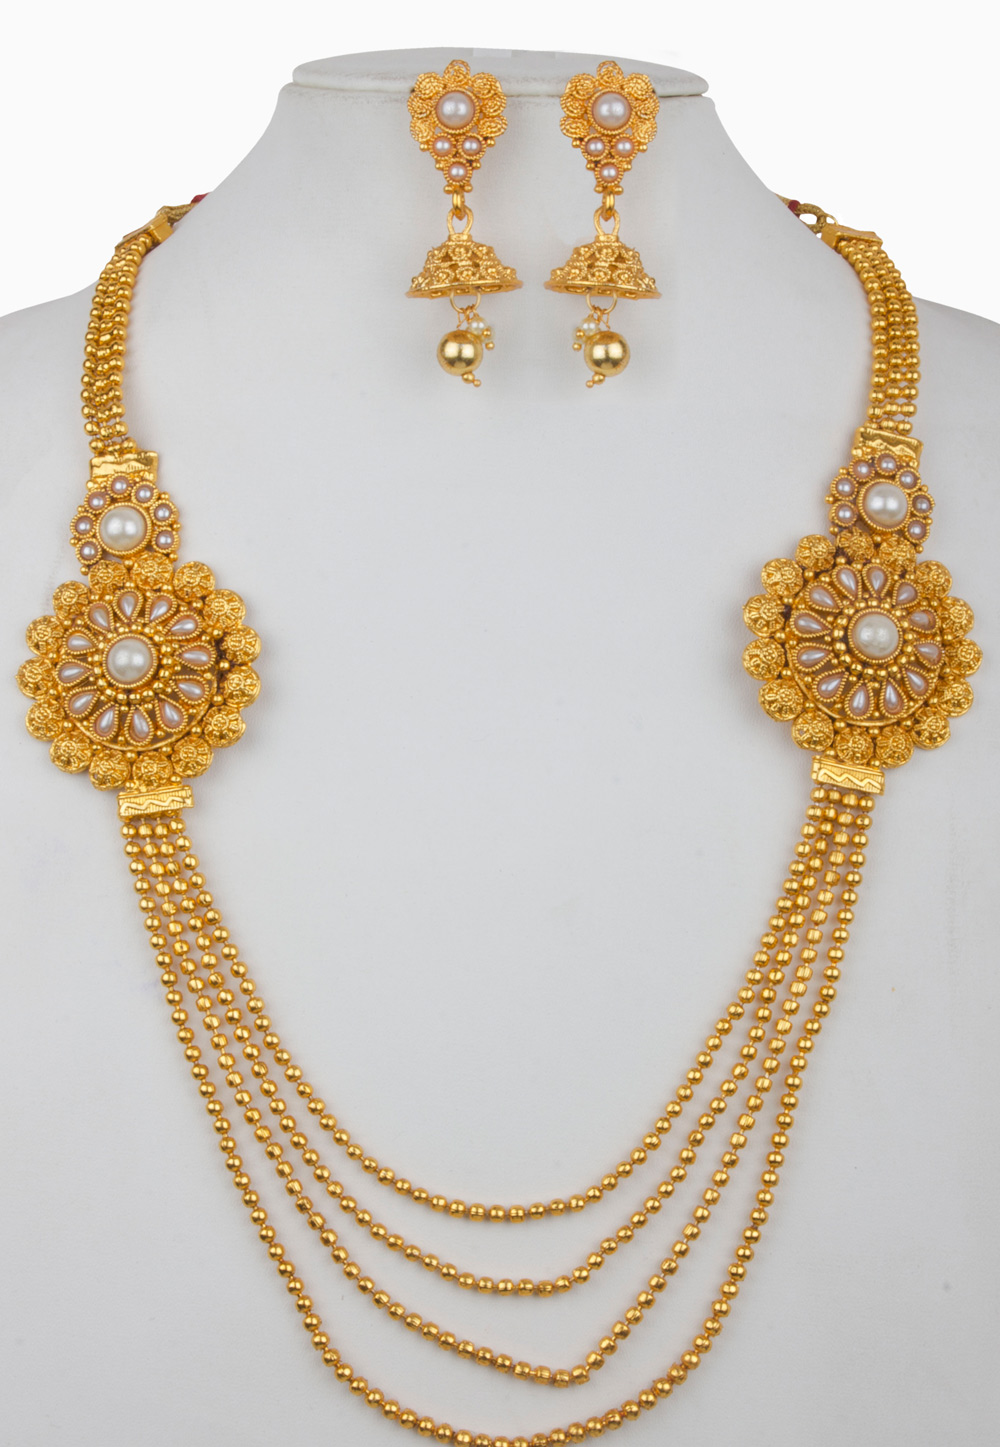 White Alloy Necklace With Earrings 157148